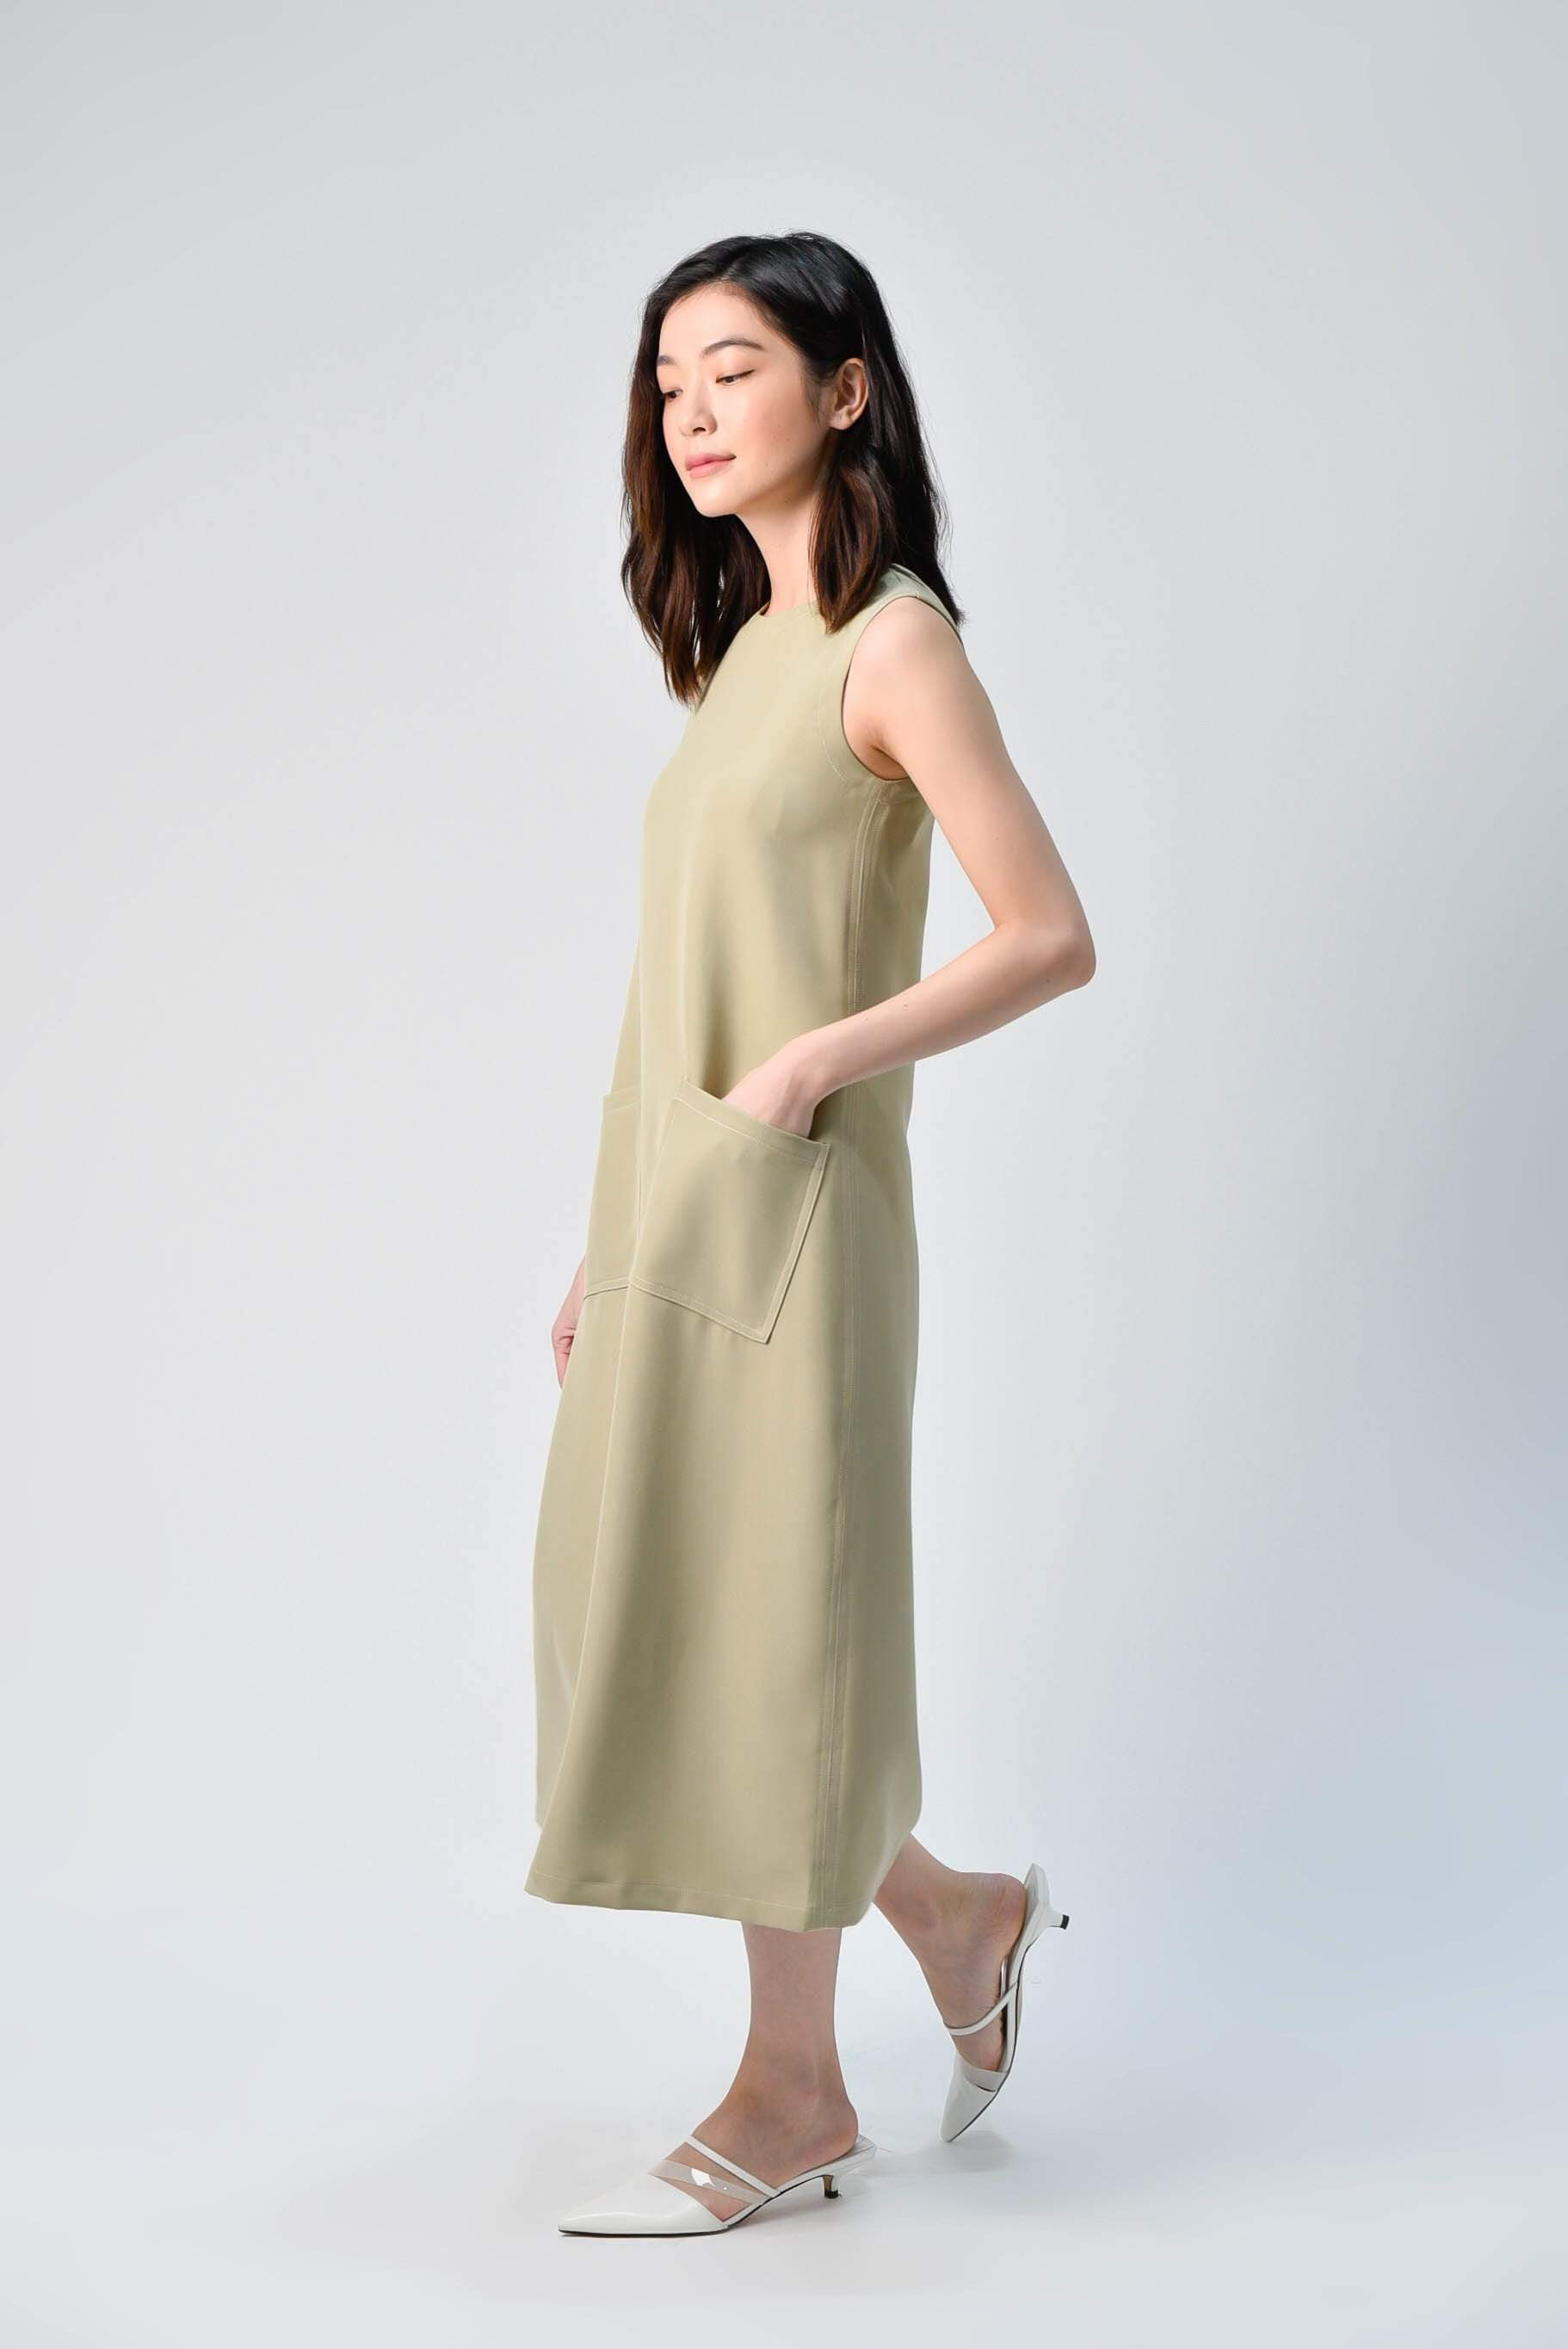 AWE Dresses STITCHED MIDI DRESS IN LIGHT OLIVE